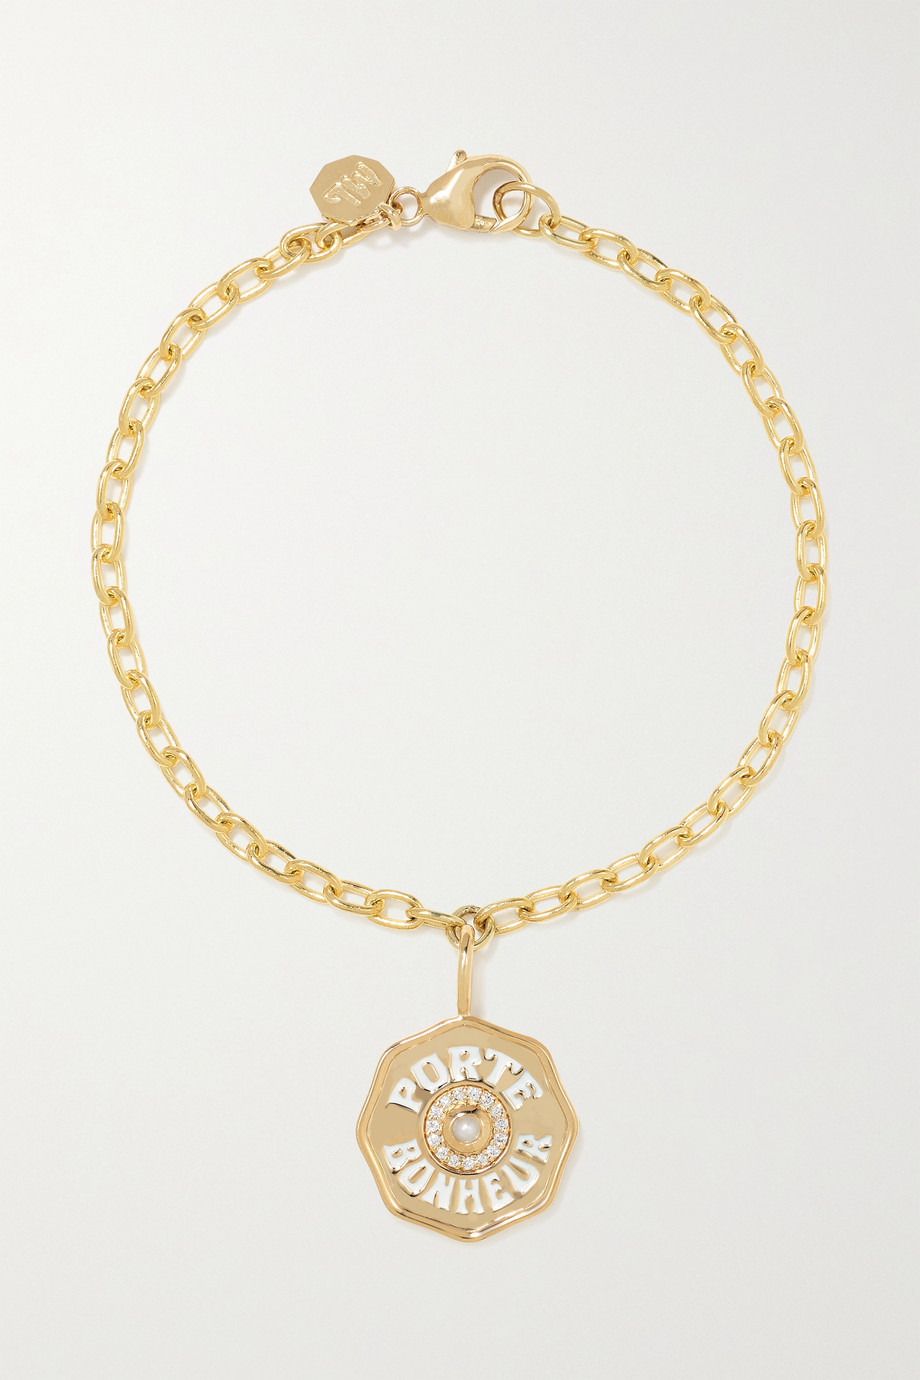 MARLO LAZ Mini Porte Bonheur Coin 14-karat gold, enamel, diamond and pearl bracelet